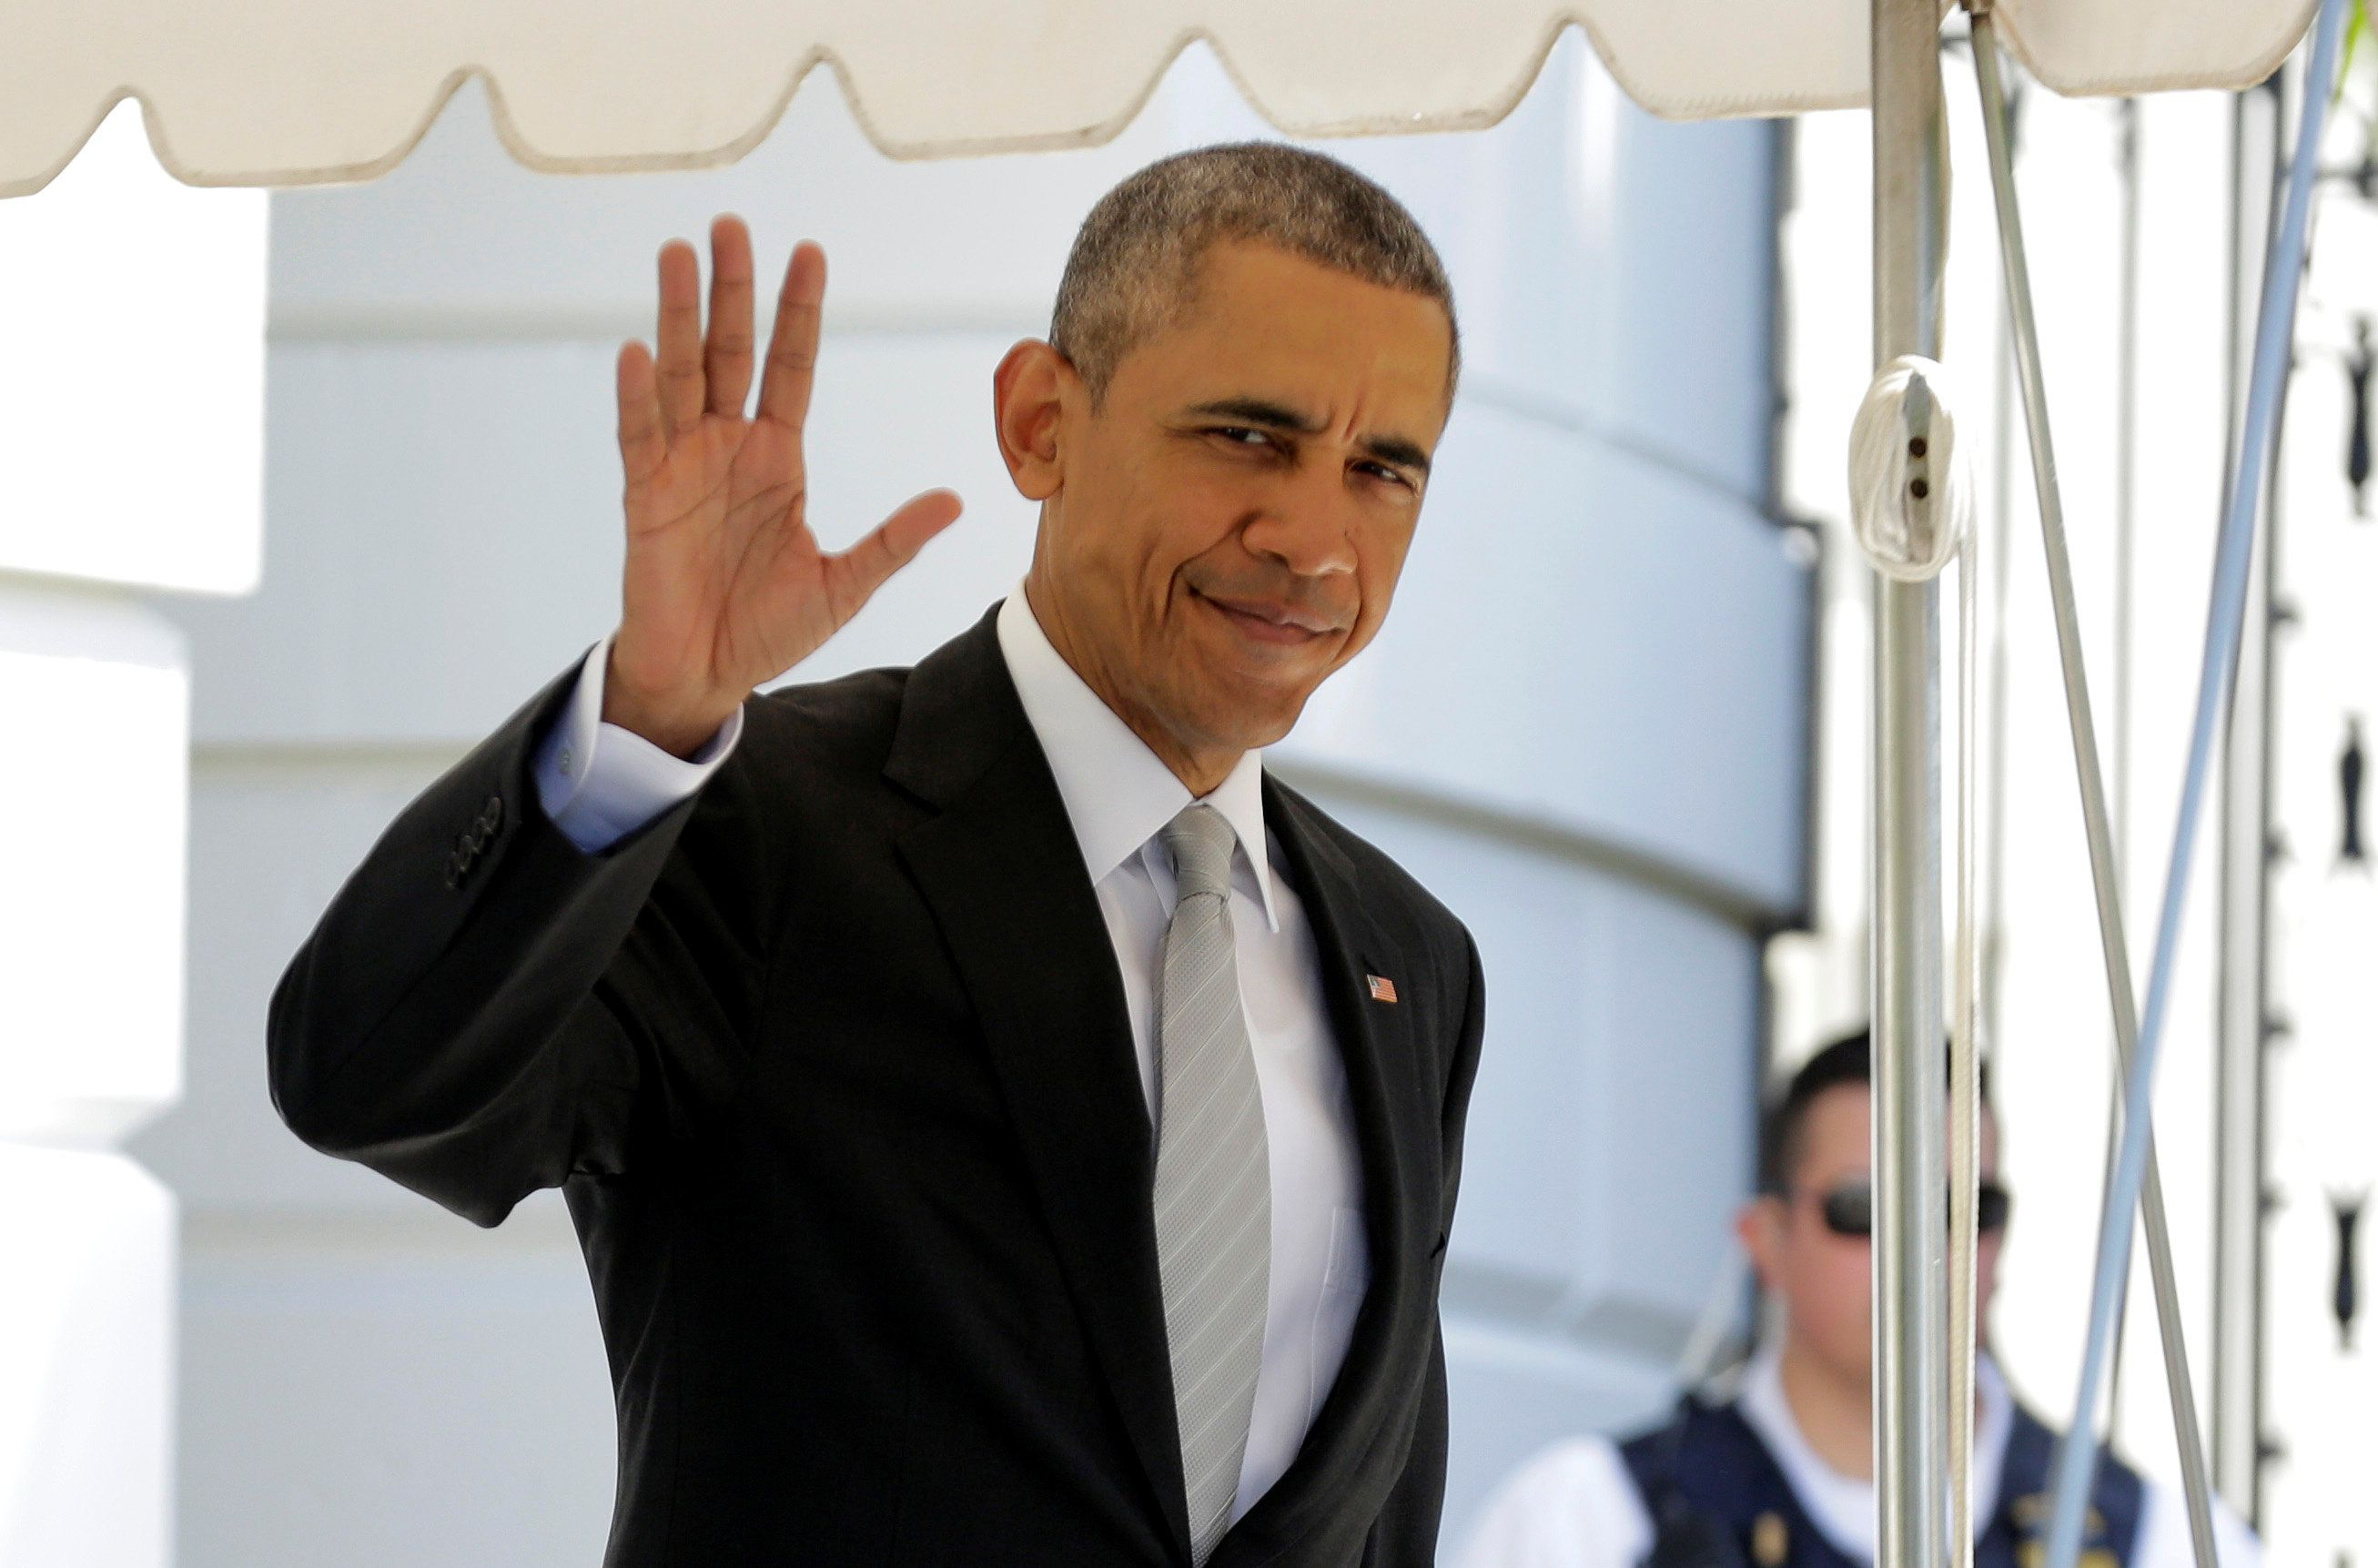 U.S. President Barack Obama waves as he walks to Marine One before departing to deliver the commencement address at Rutgers University from the White House in Washington, U.S., May 15, 2016.      REUTERS/Joshua Roberts